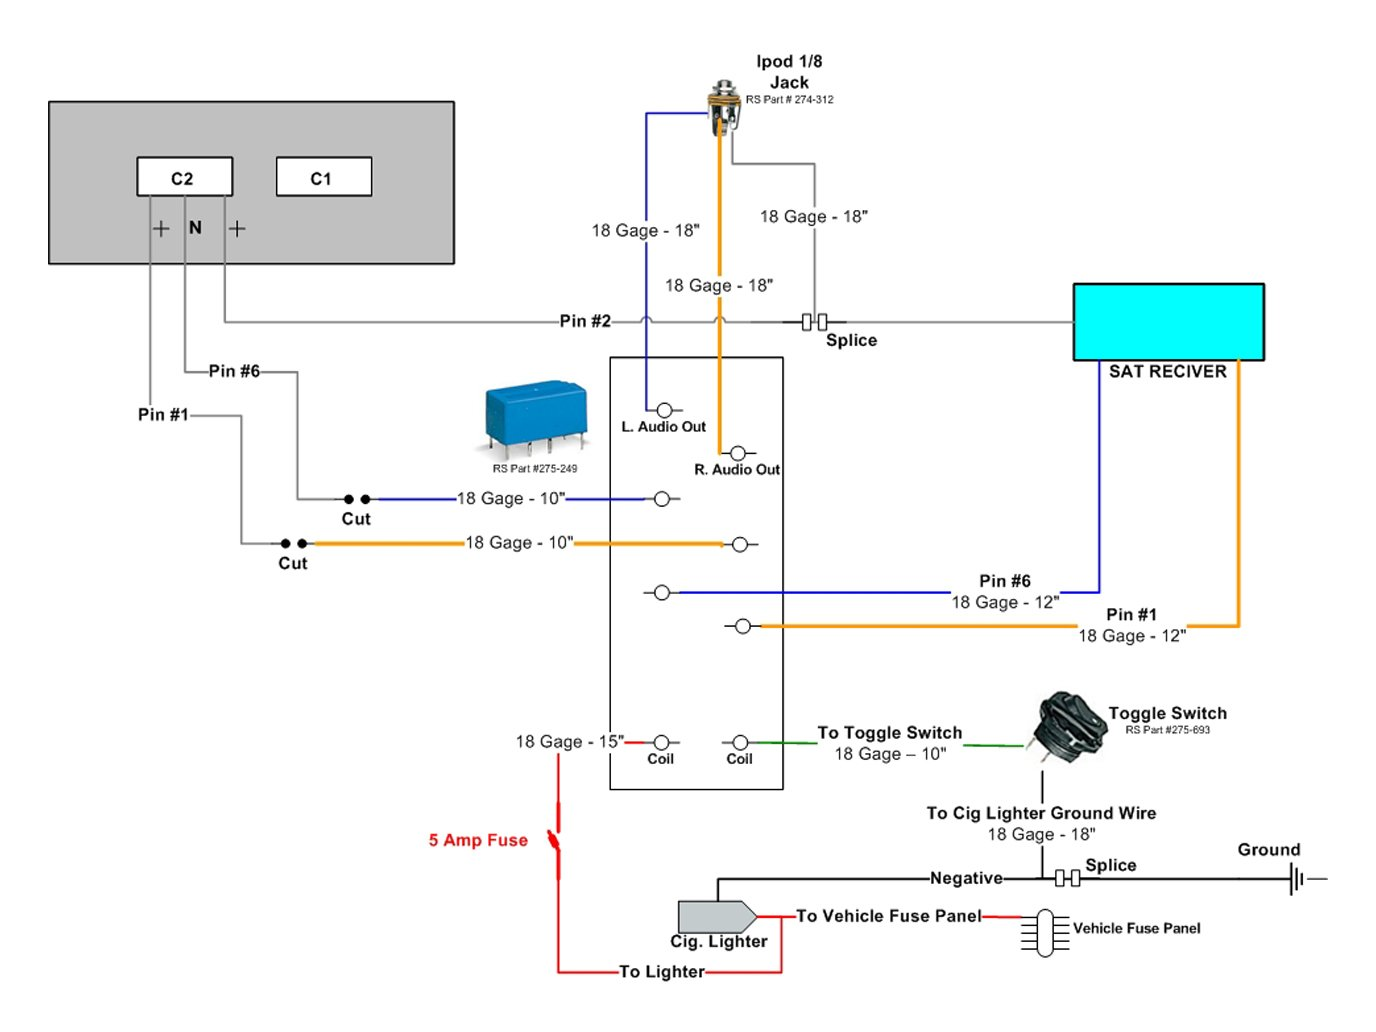 4385d1111955406 tech aux input ipod factory radio ipod aux audio thru sat diagram online view tech aux input ipod in factory radio page 2 chrysler 300c Trailer Wiring Harness Chrysler at gsmportal.co